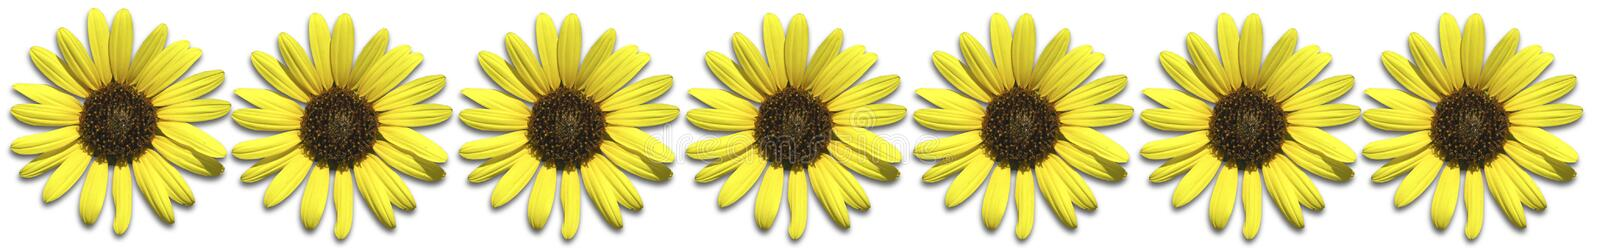 Download Sunflower Border stock illustration. Illustration of bright - 176660